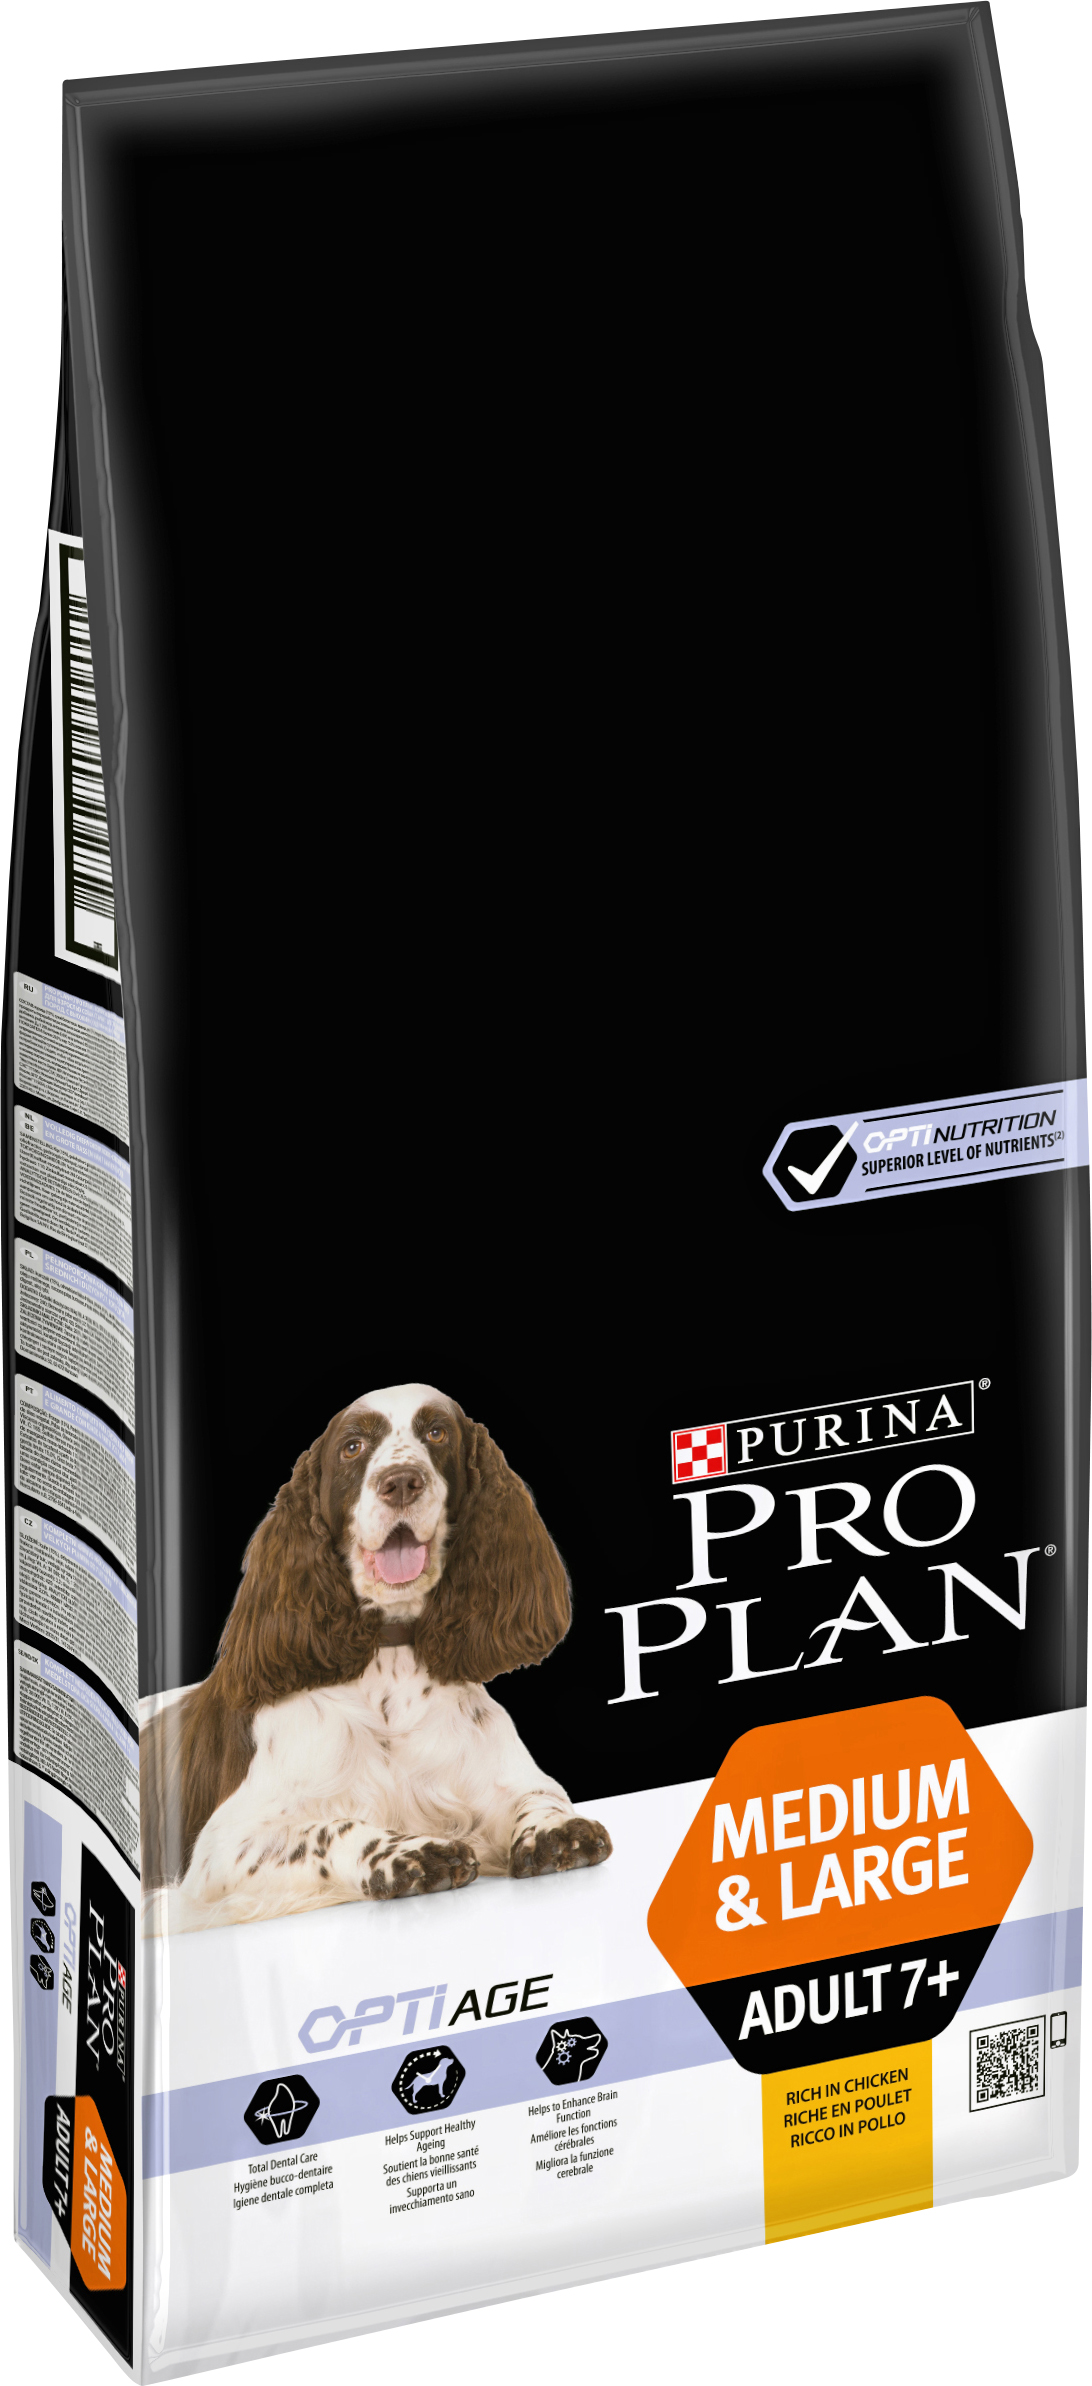 Hundfoder Pro Plan Medium & Large Adult 7+, 14 kg